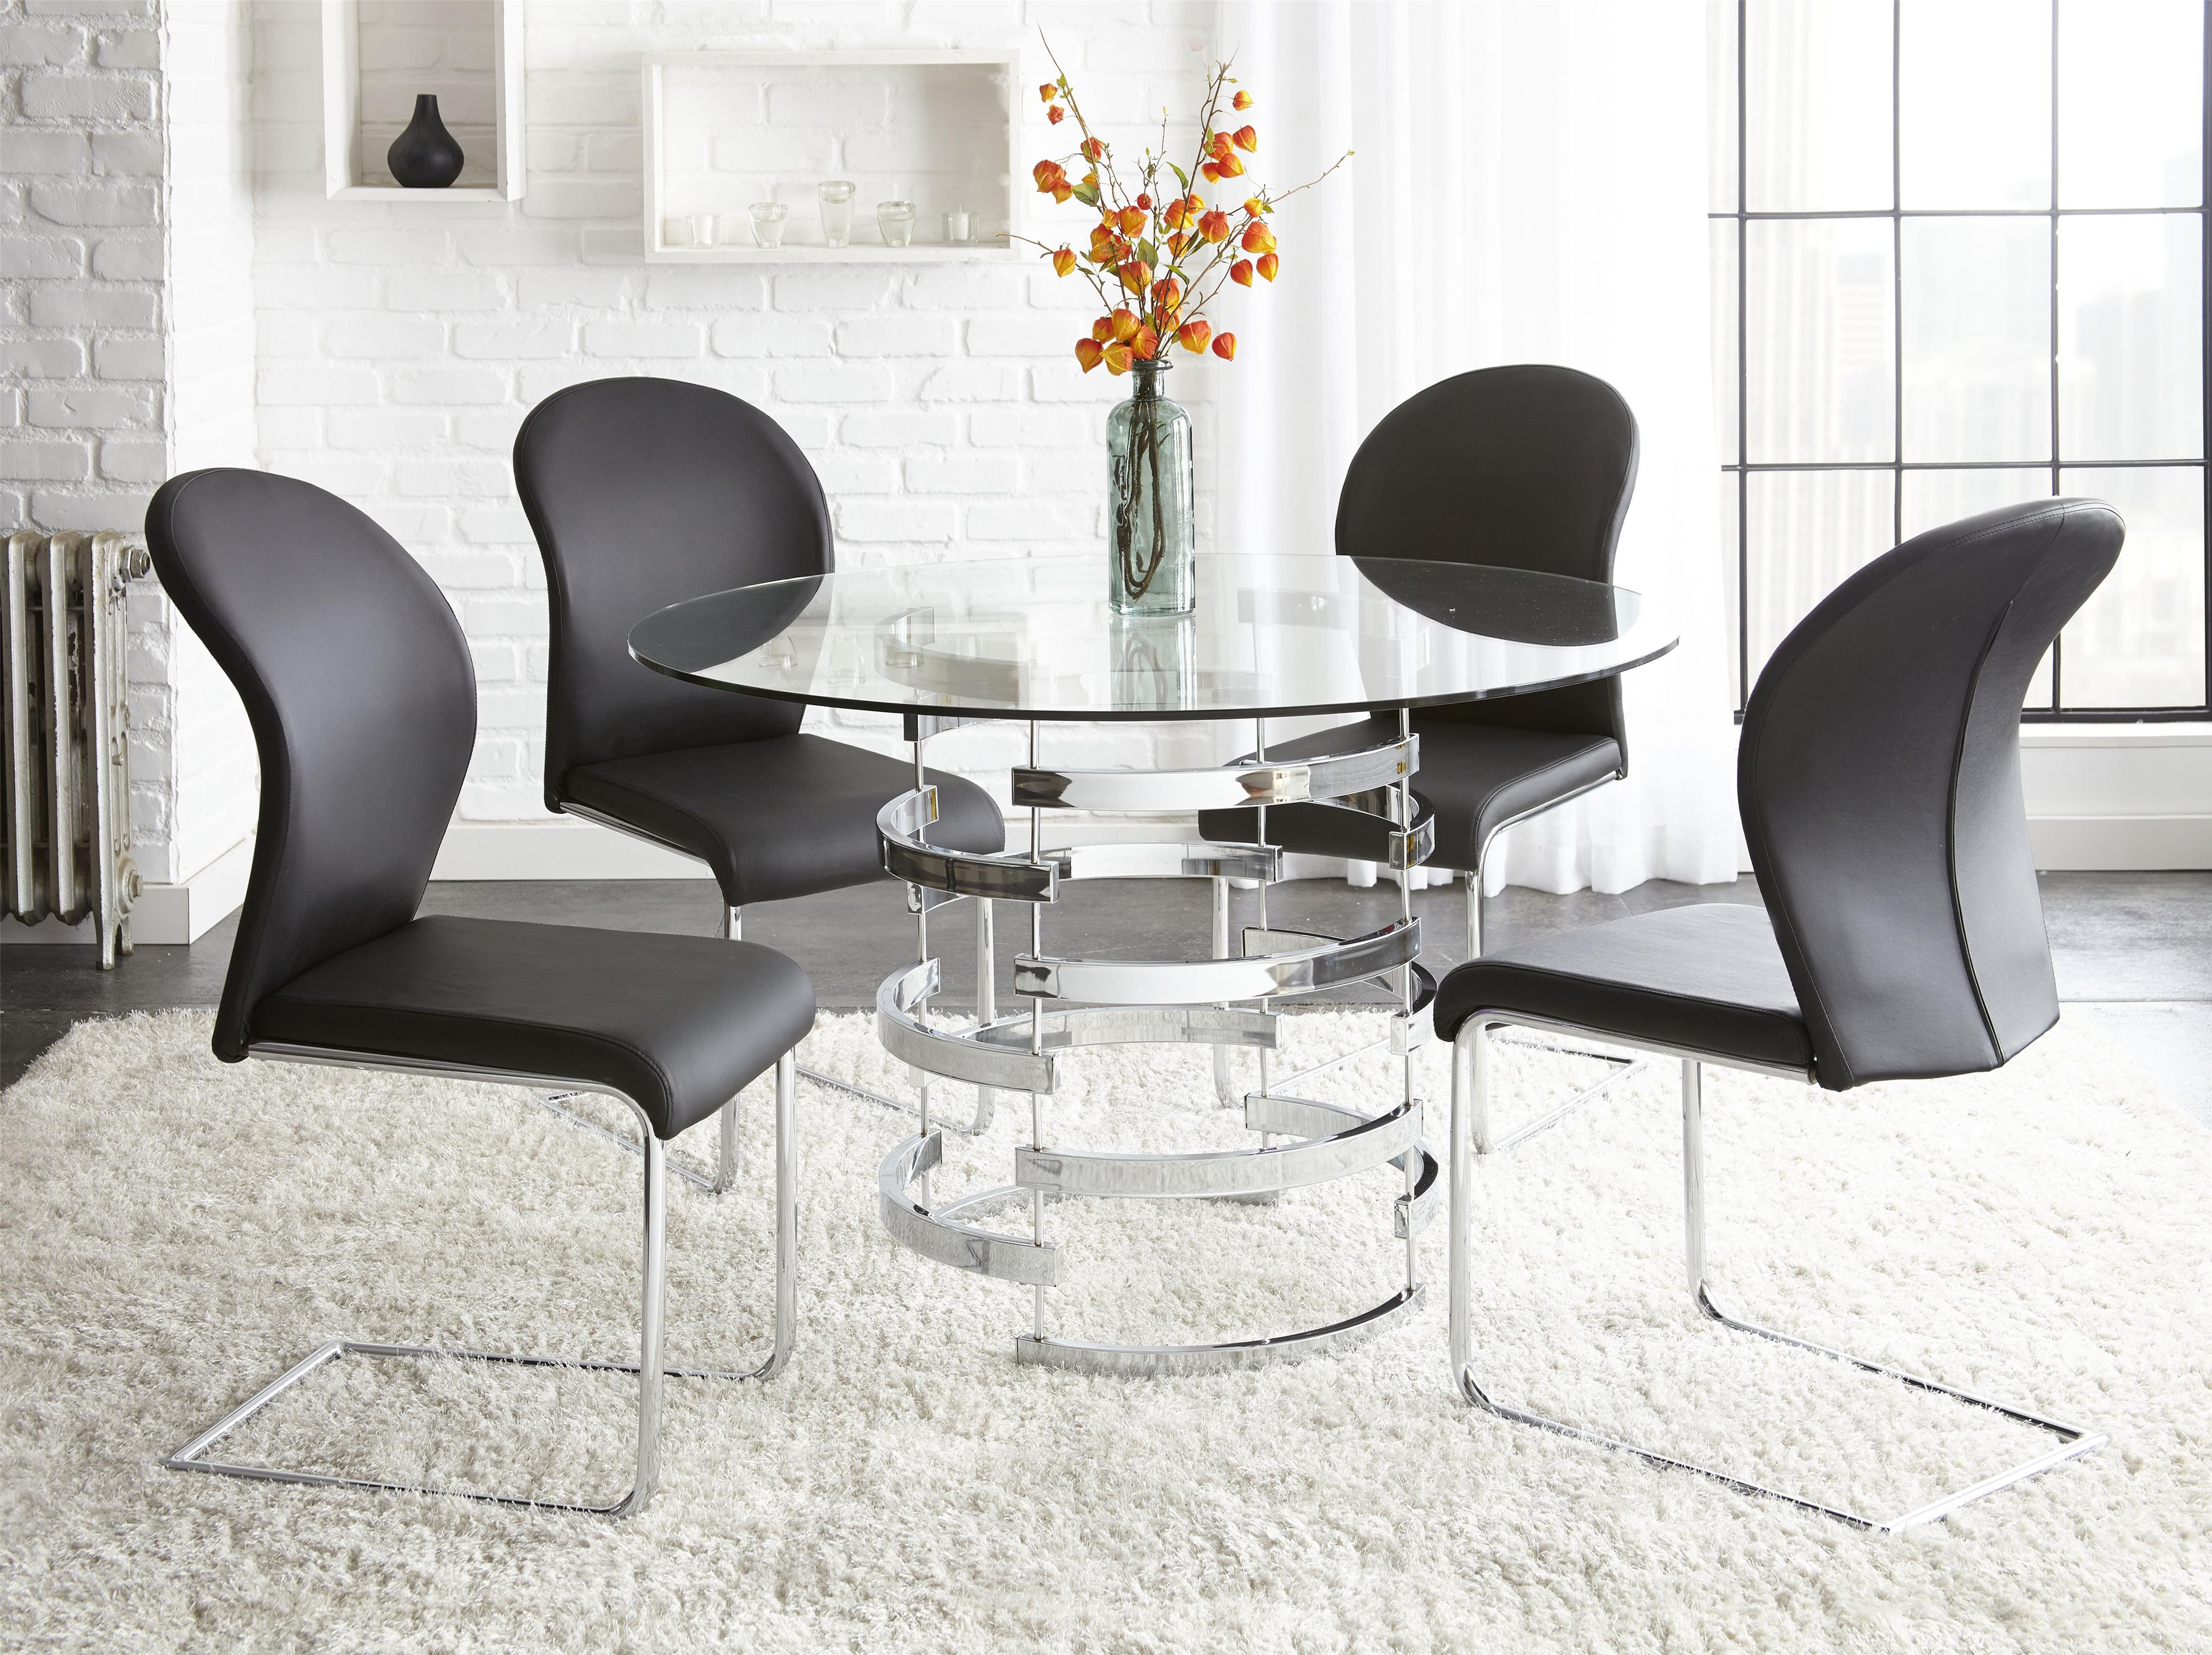 Steve Silver Tayside 5 Piece Dining Table Set - Item Number TS450T+B+ & Steve Silver Tayside 5 Piece Round Glass Table Set with Chrome ...